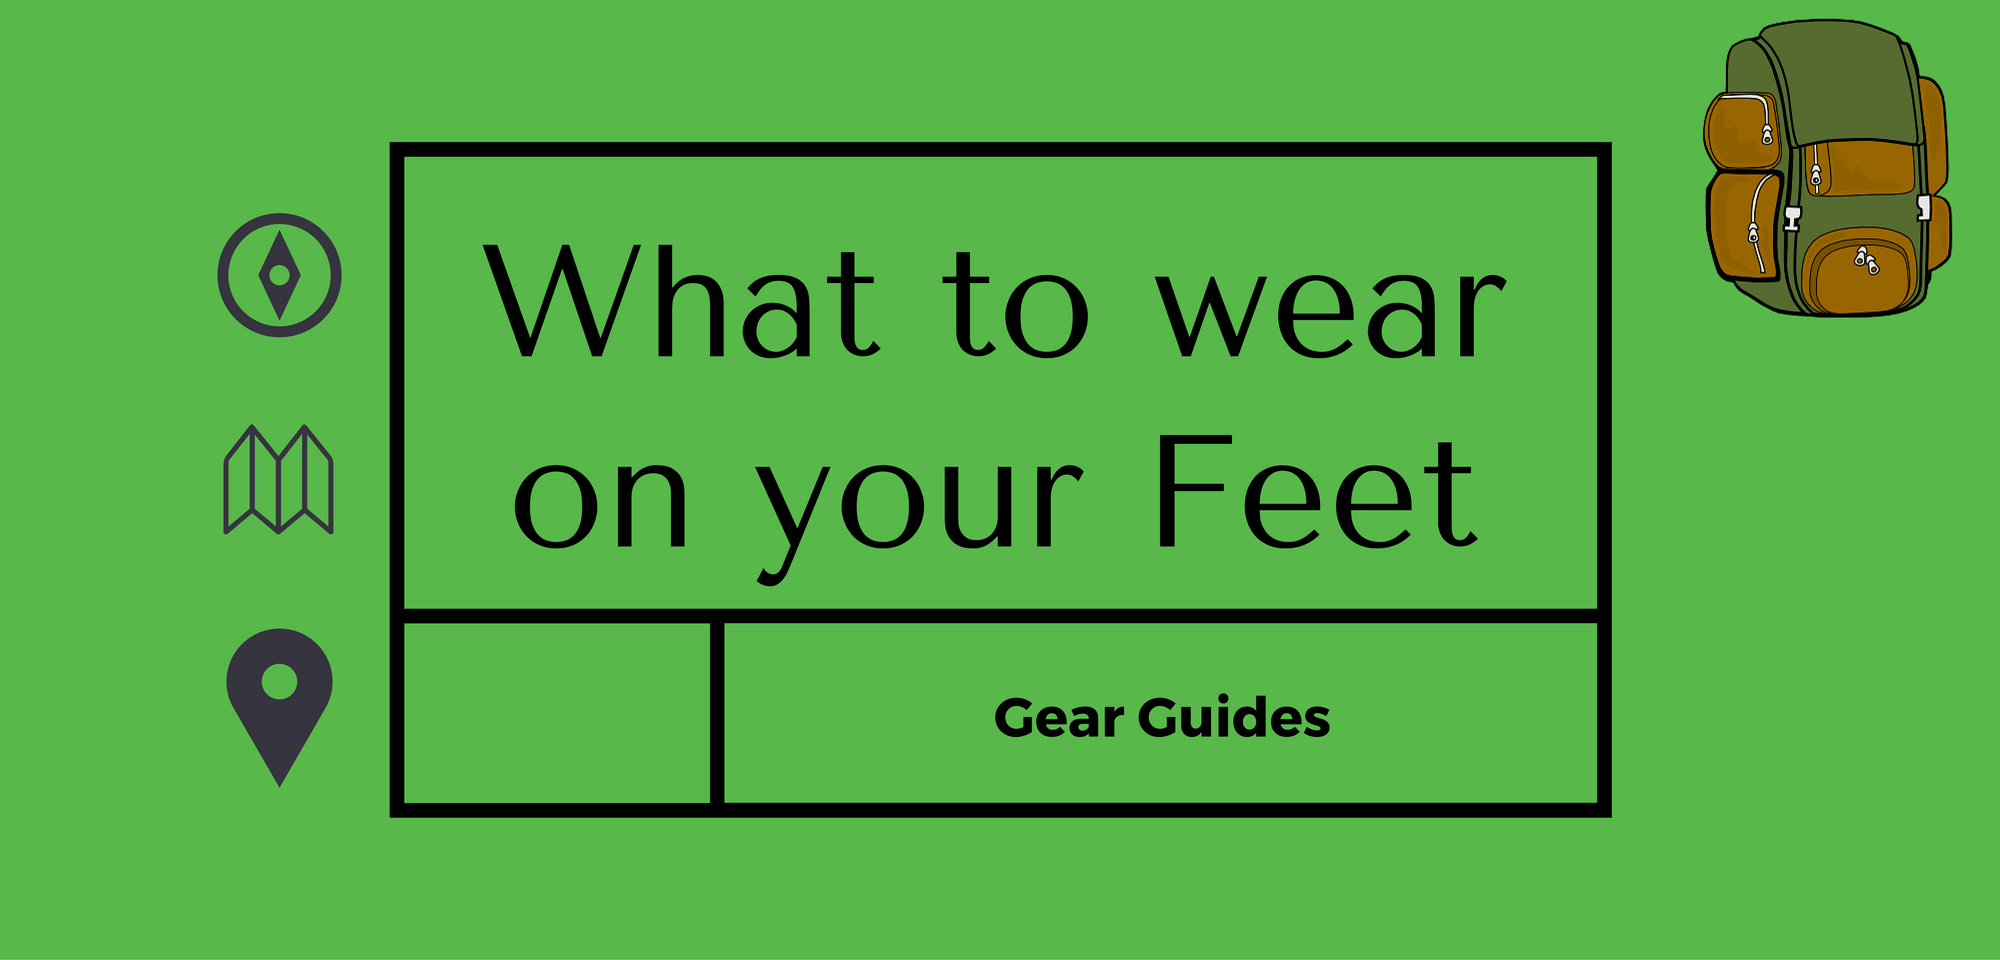 What to wear on your feet